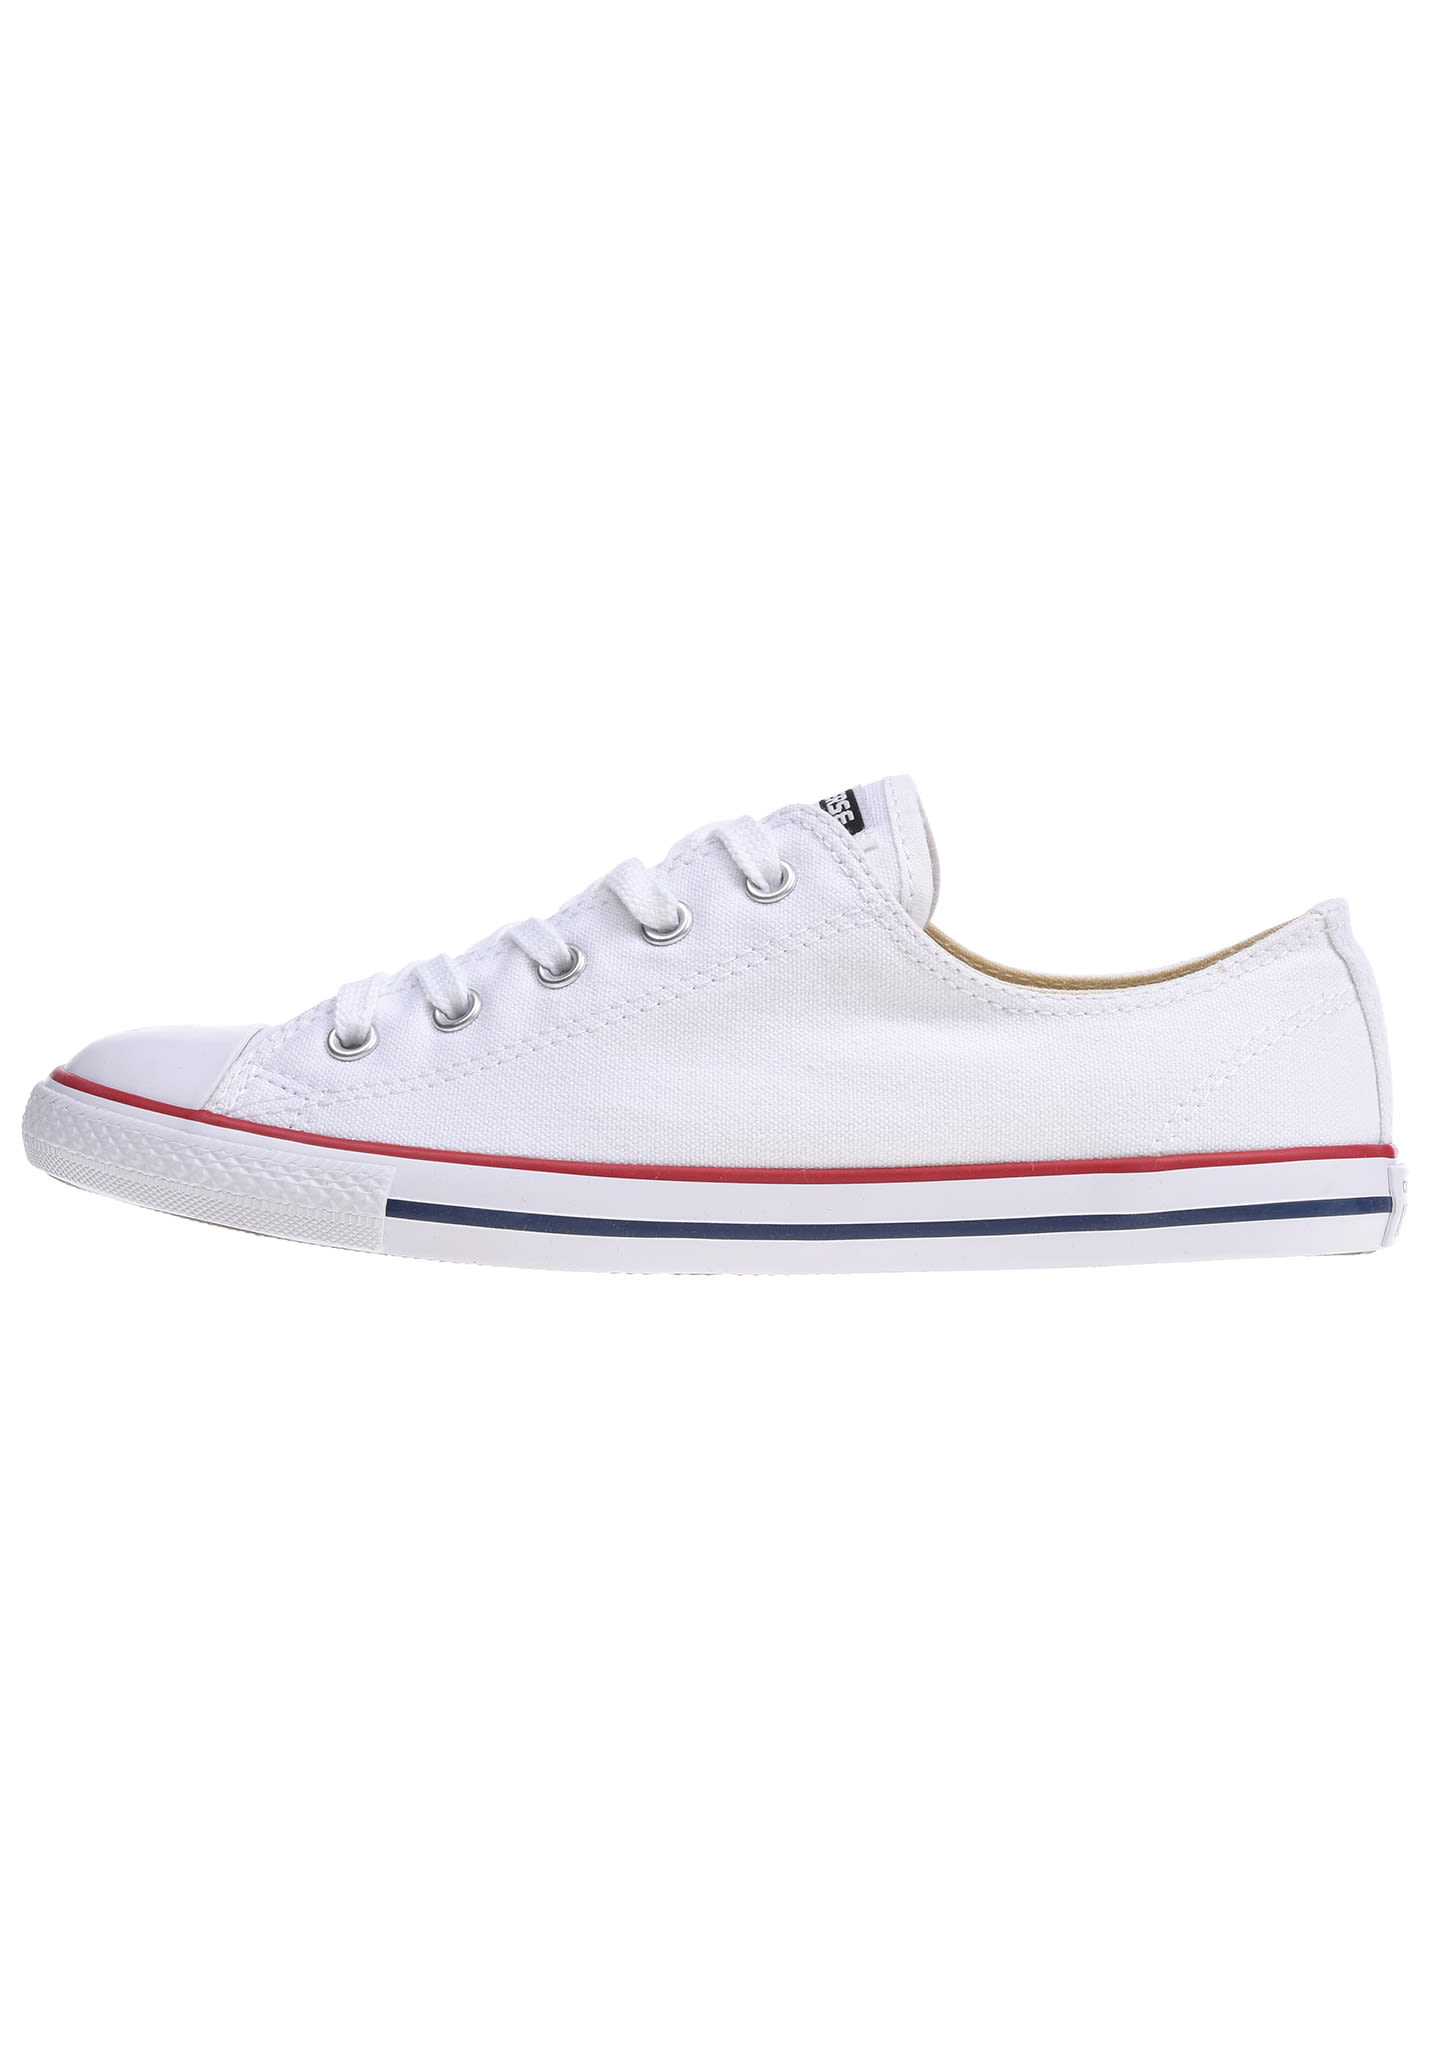 3111edf80a5 Converse Chuck Taylor Dainty Ox - Sneakers voor Dames - Wit - Planet Sports